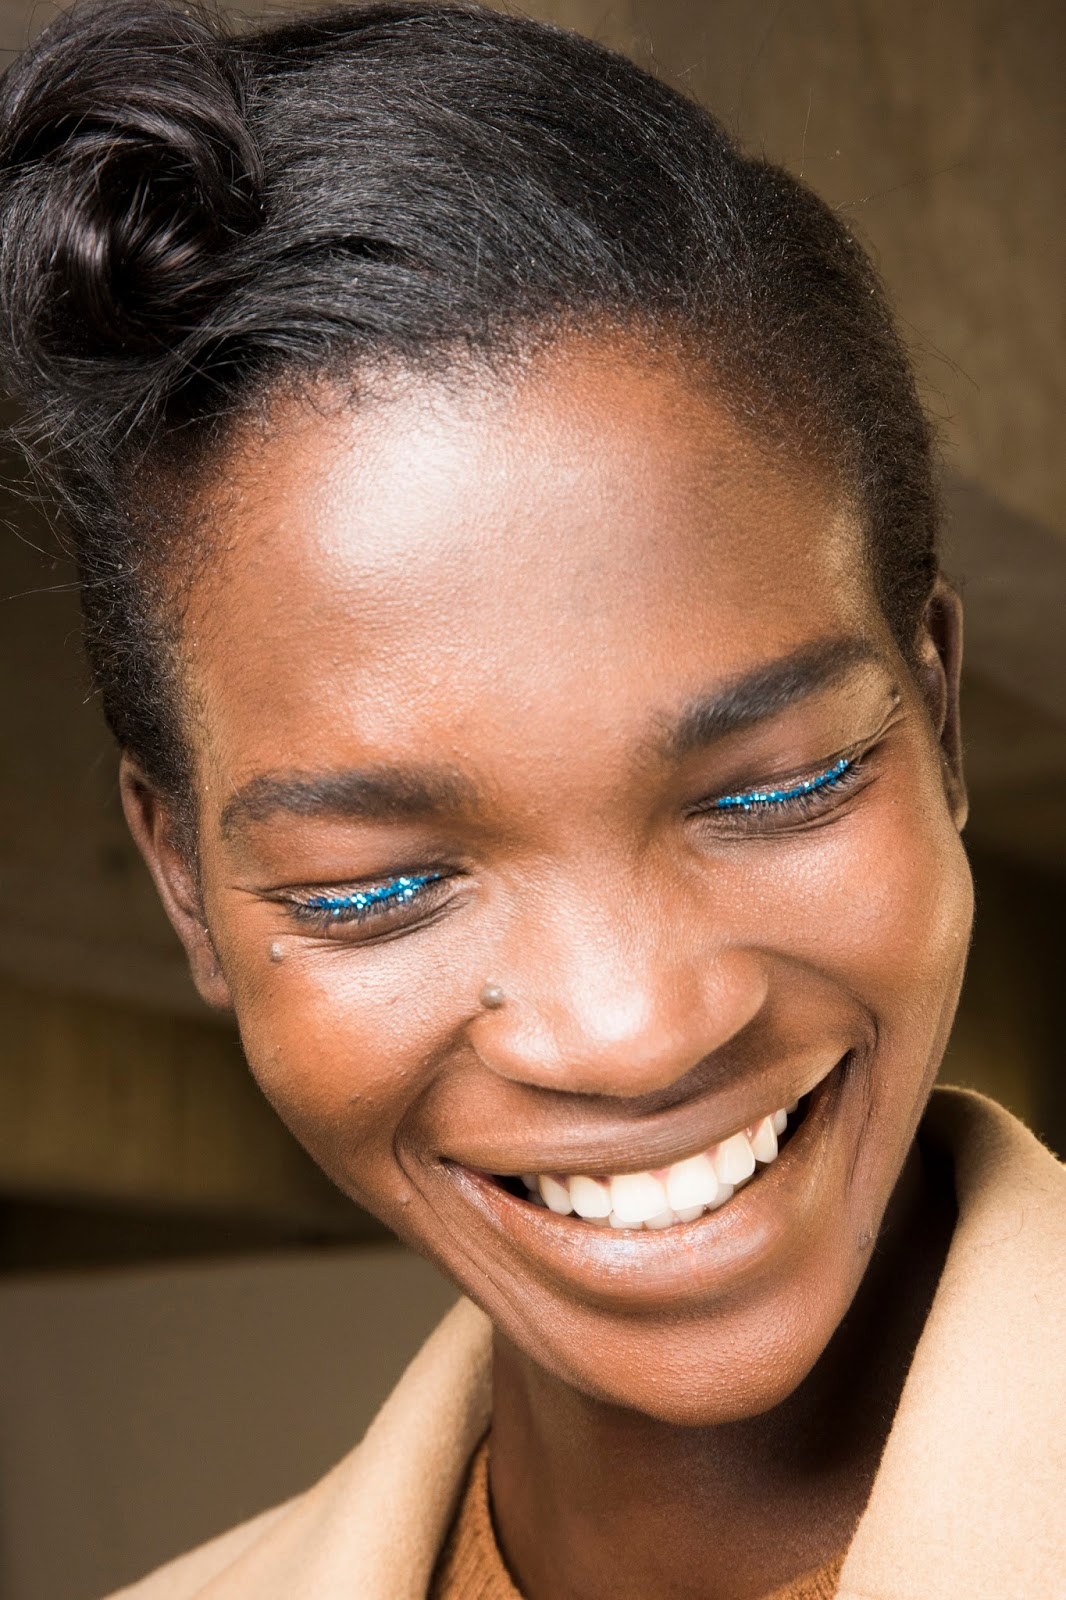 paris fashion week spring 2016, beauty, model, face, blue glitter eyeliner, laughing, 40s hair